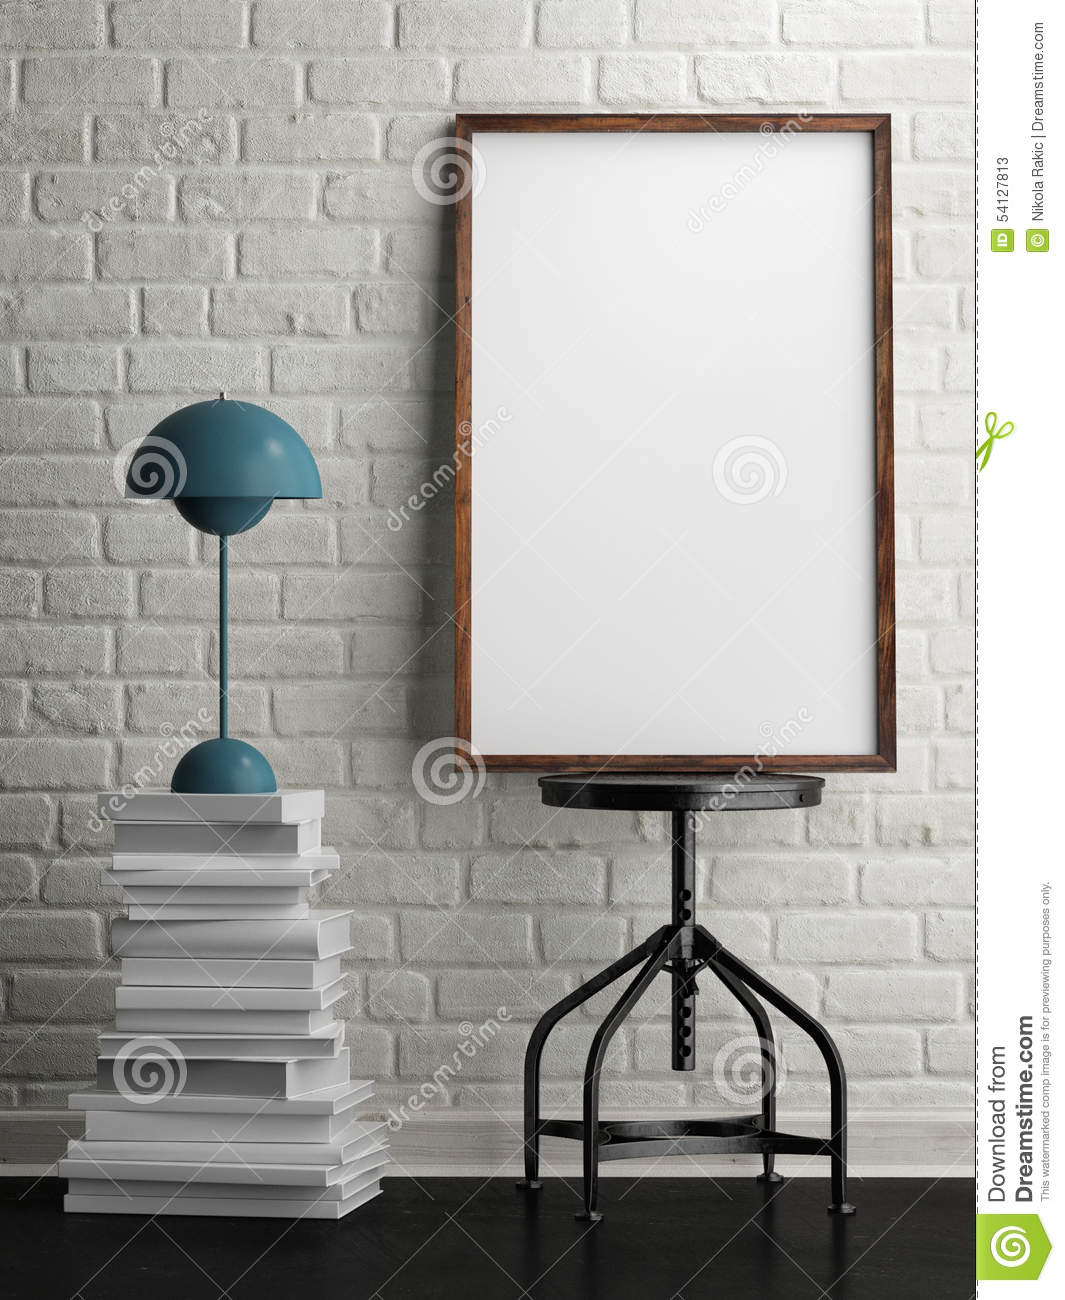 hanging chair metal tan leather mock up white frame in room, brick background, 3d illustration stock - image ...